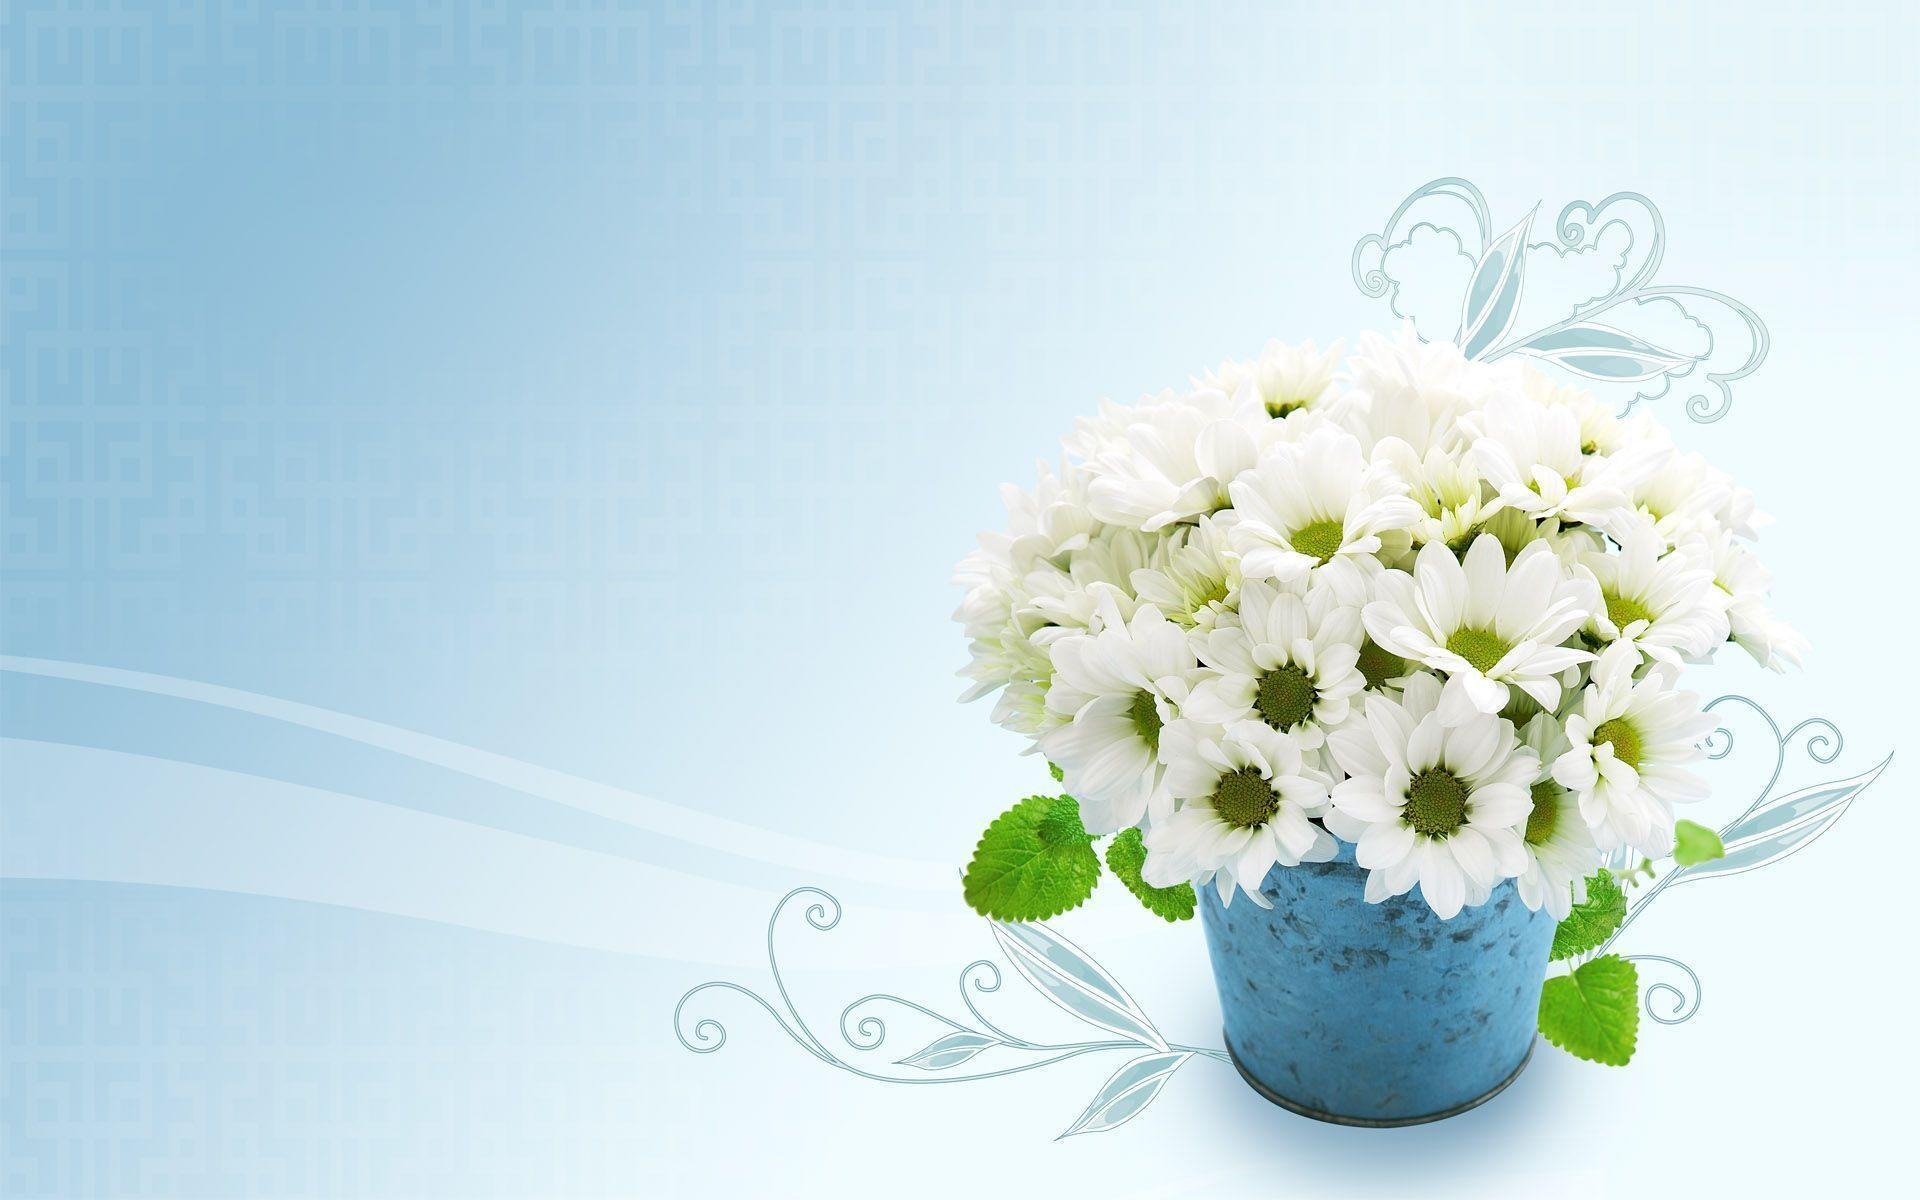 wallpaper flowers bouquet blue - photo #6